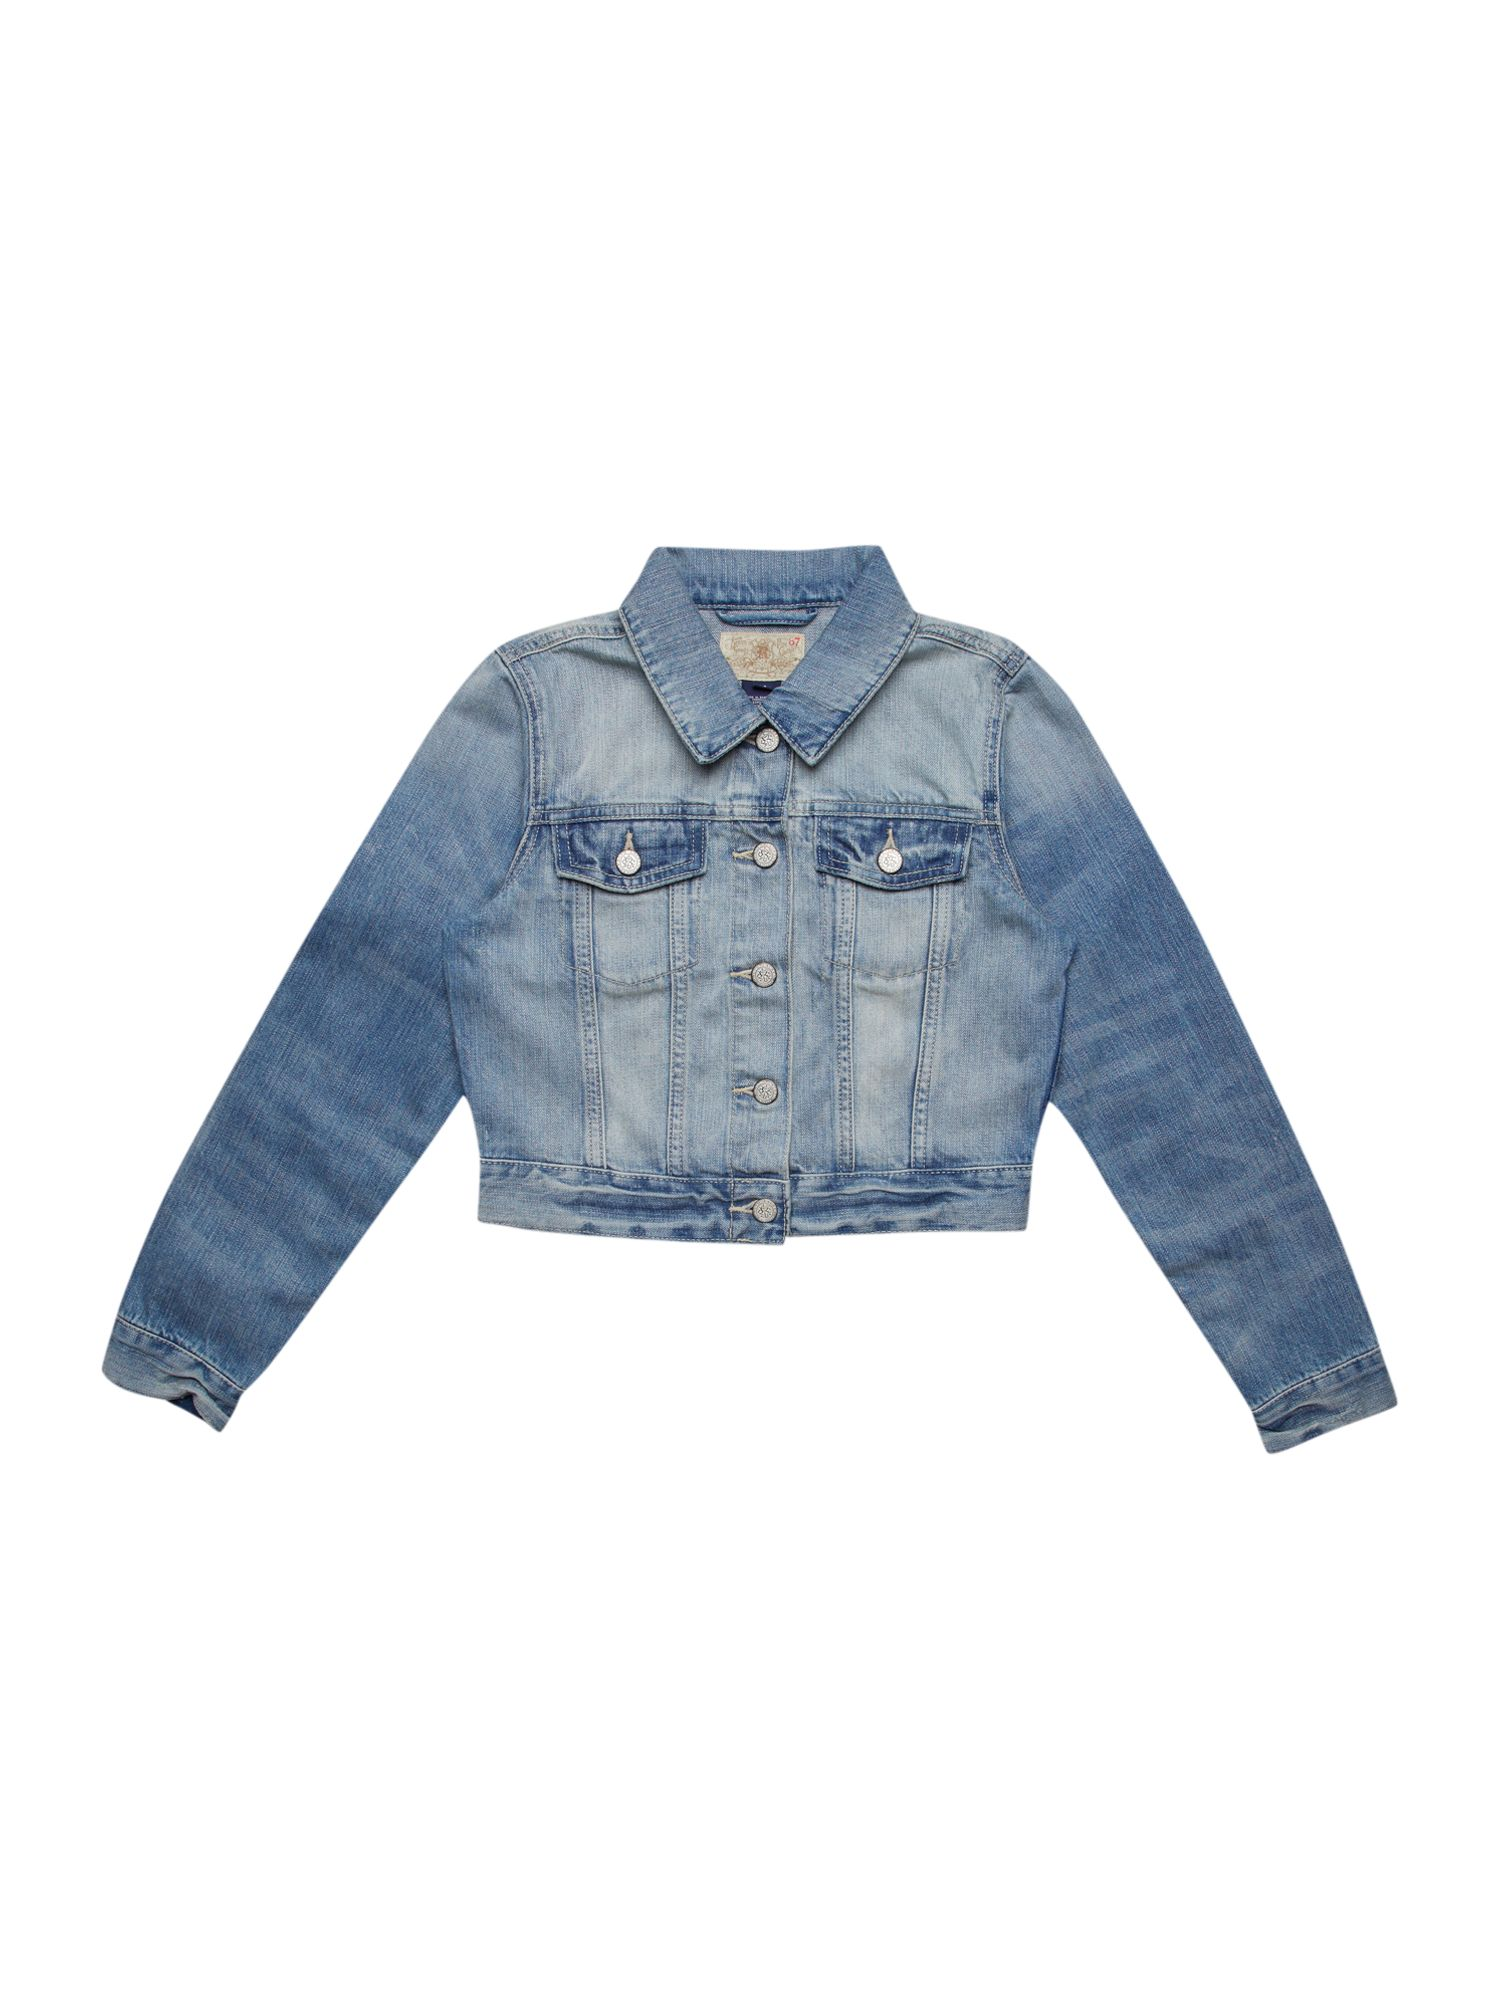 Girls trucker jacket